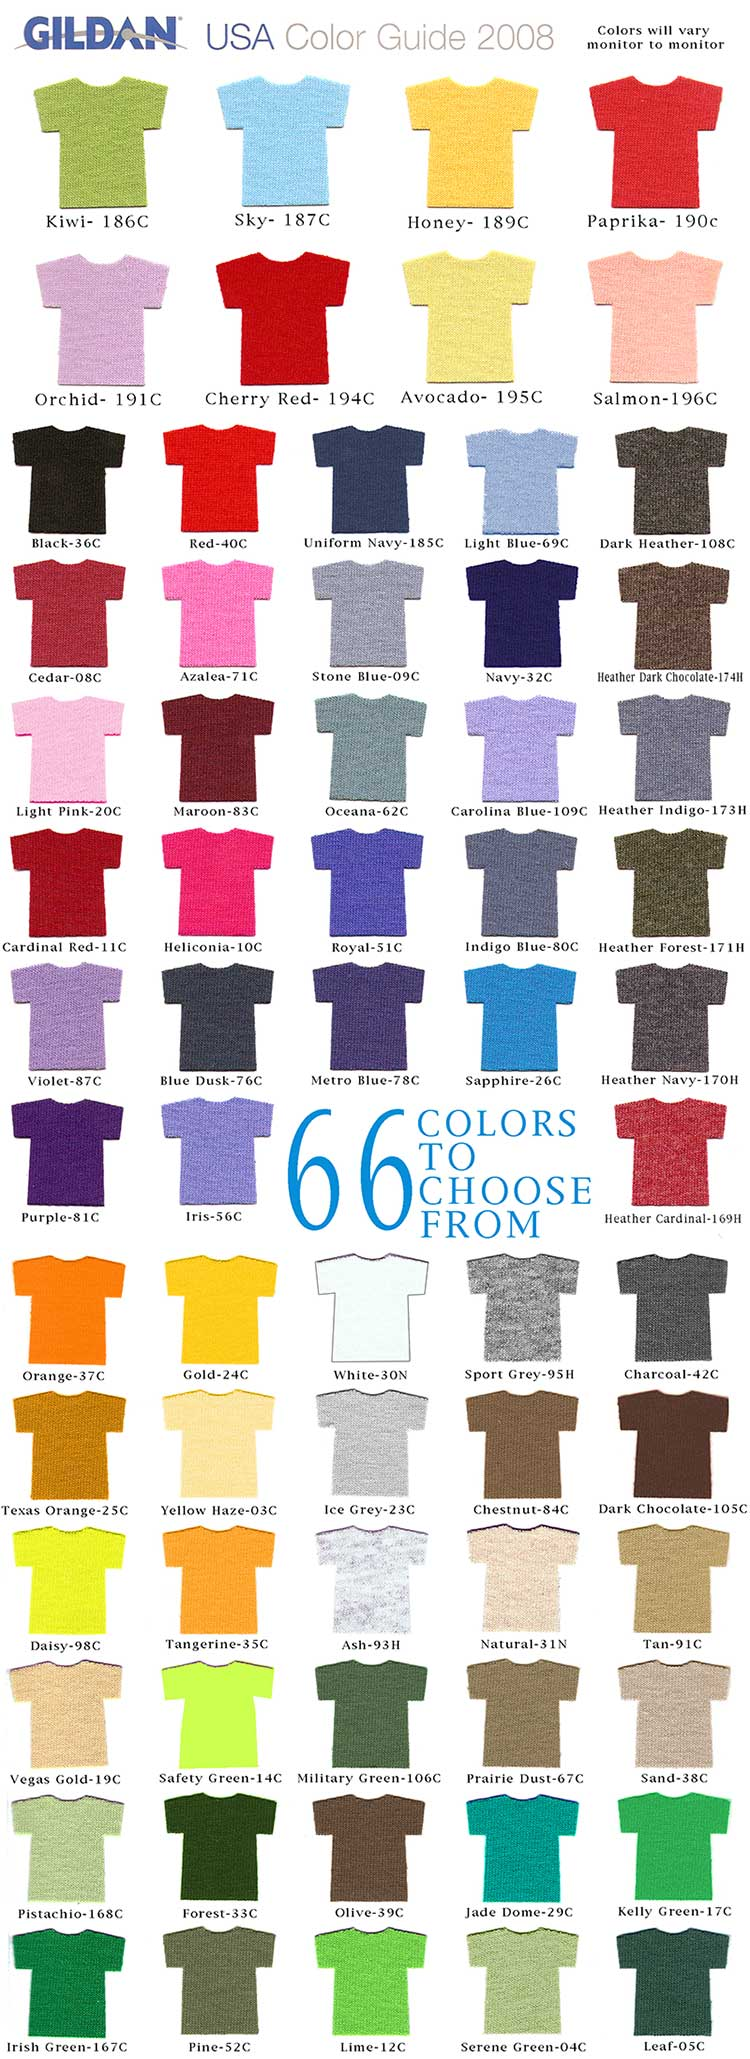 Gildan 5000 Color Chart 2013 Topsimages